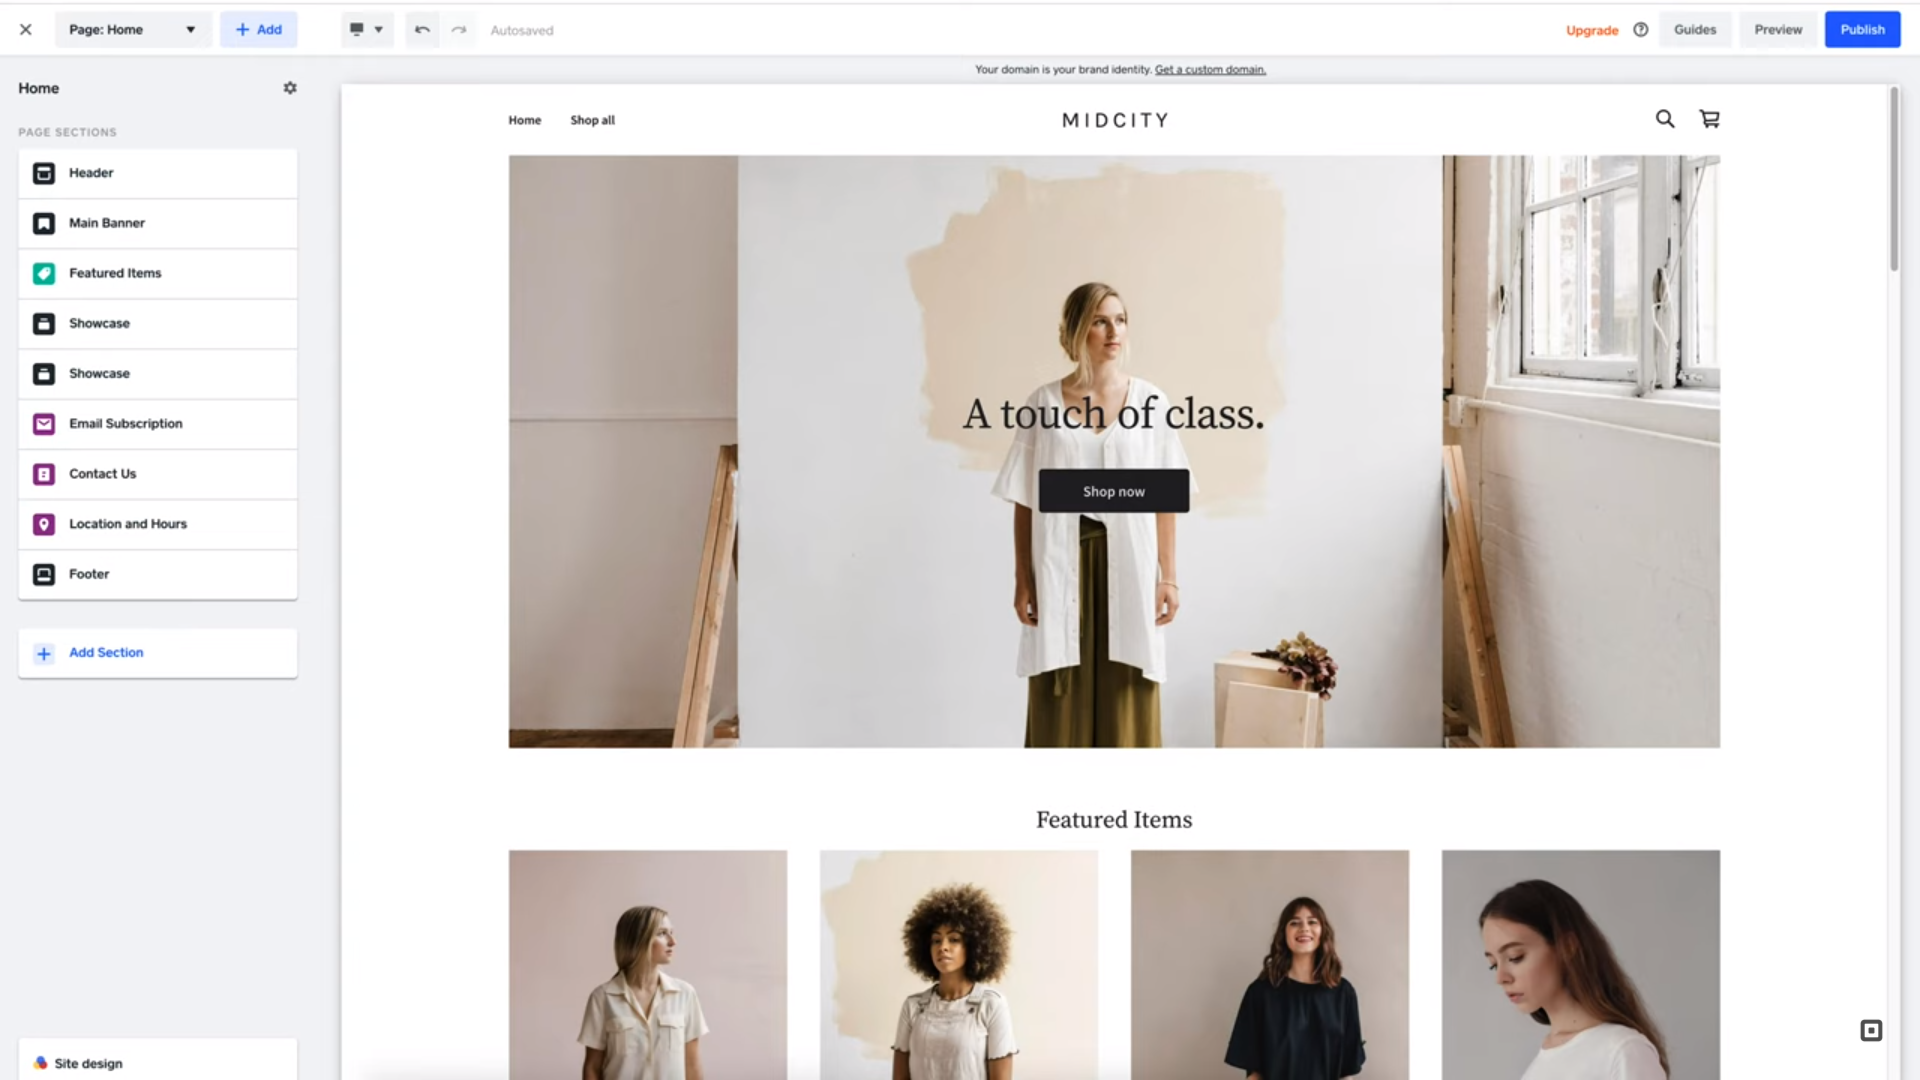 Square Online add products